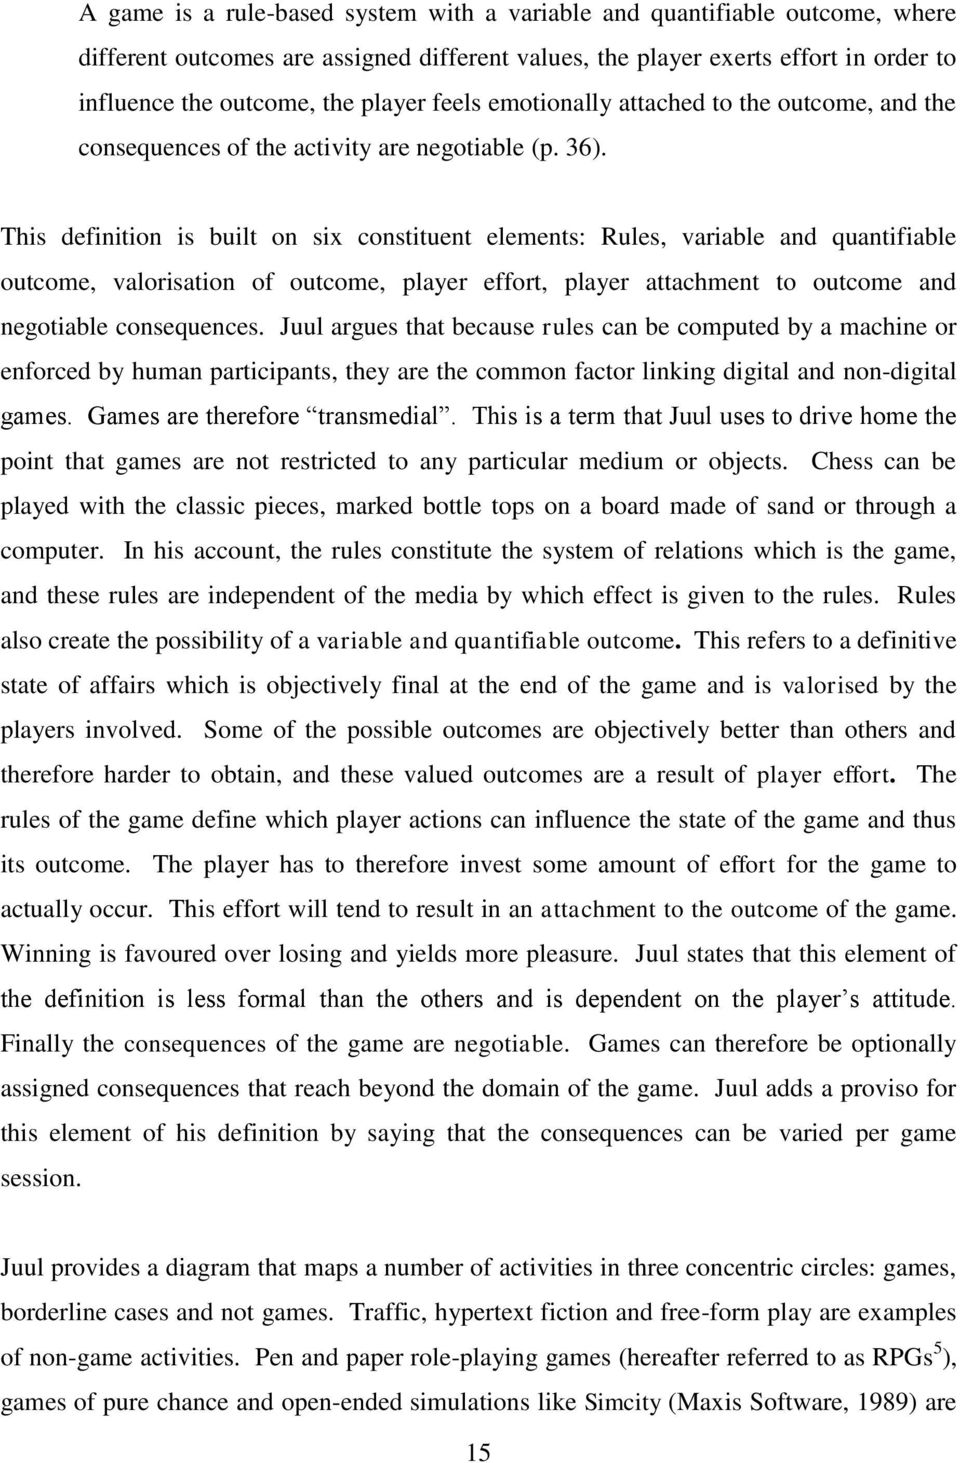 This definition is built on six constituent elements: Rules, variable and quantifiable outcome, valorisation of outcome, player effort, player attachment to outcome and negotiable consequences.